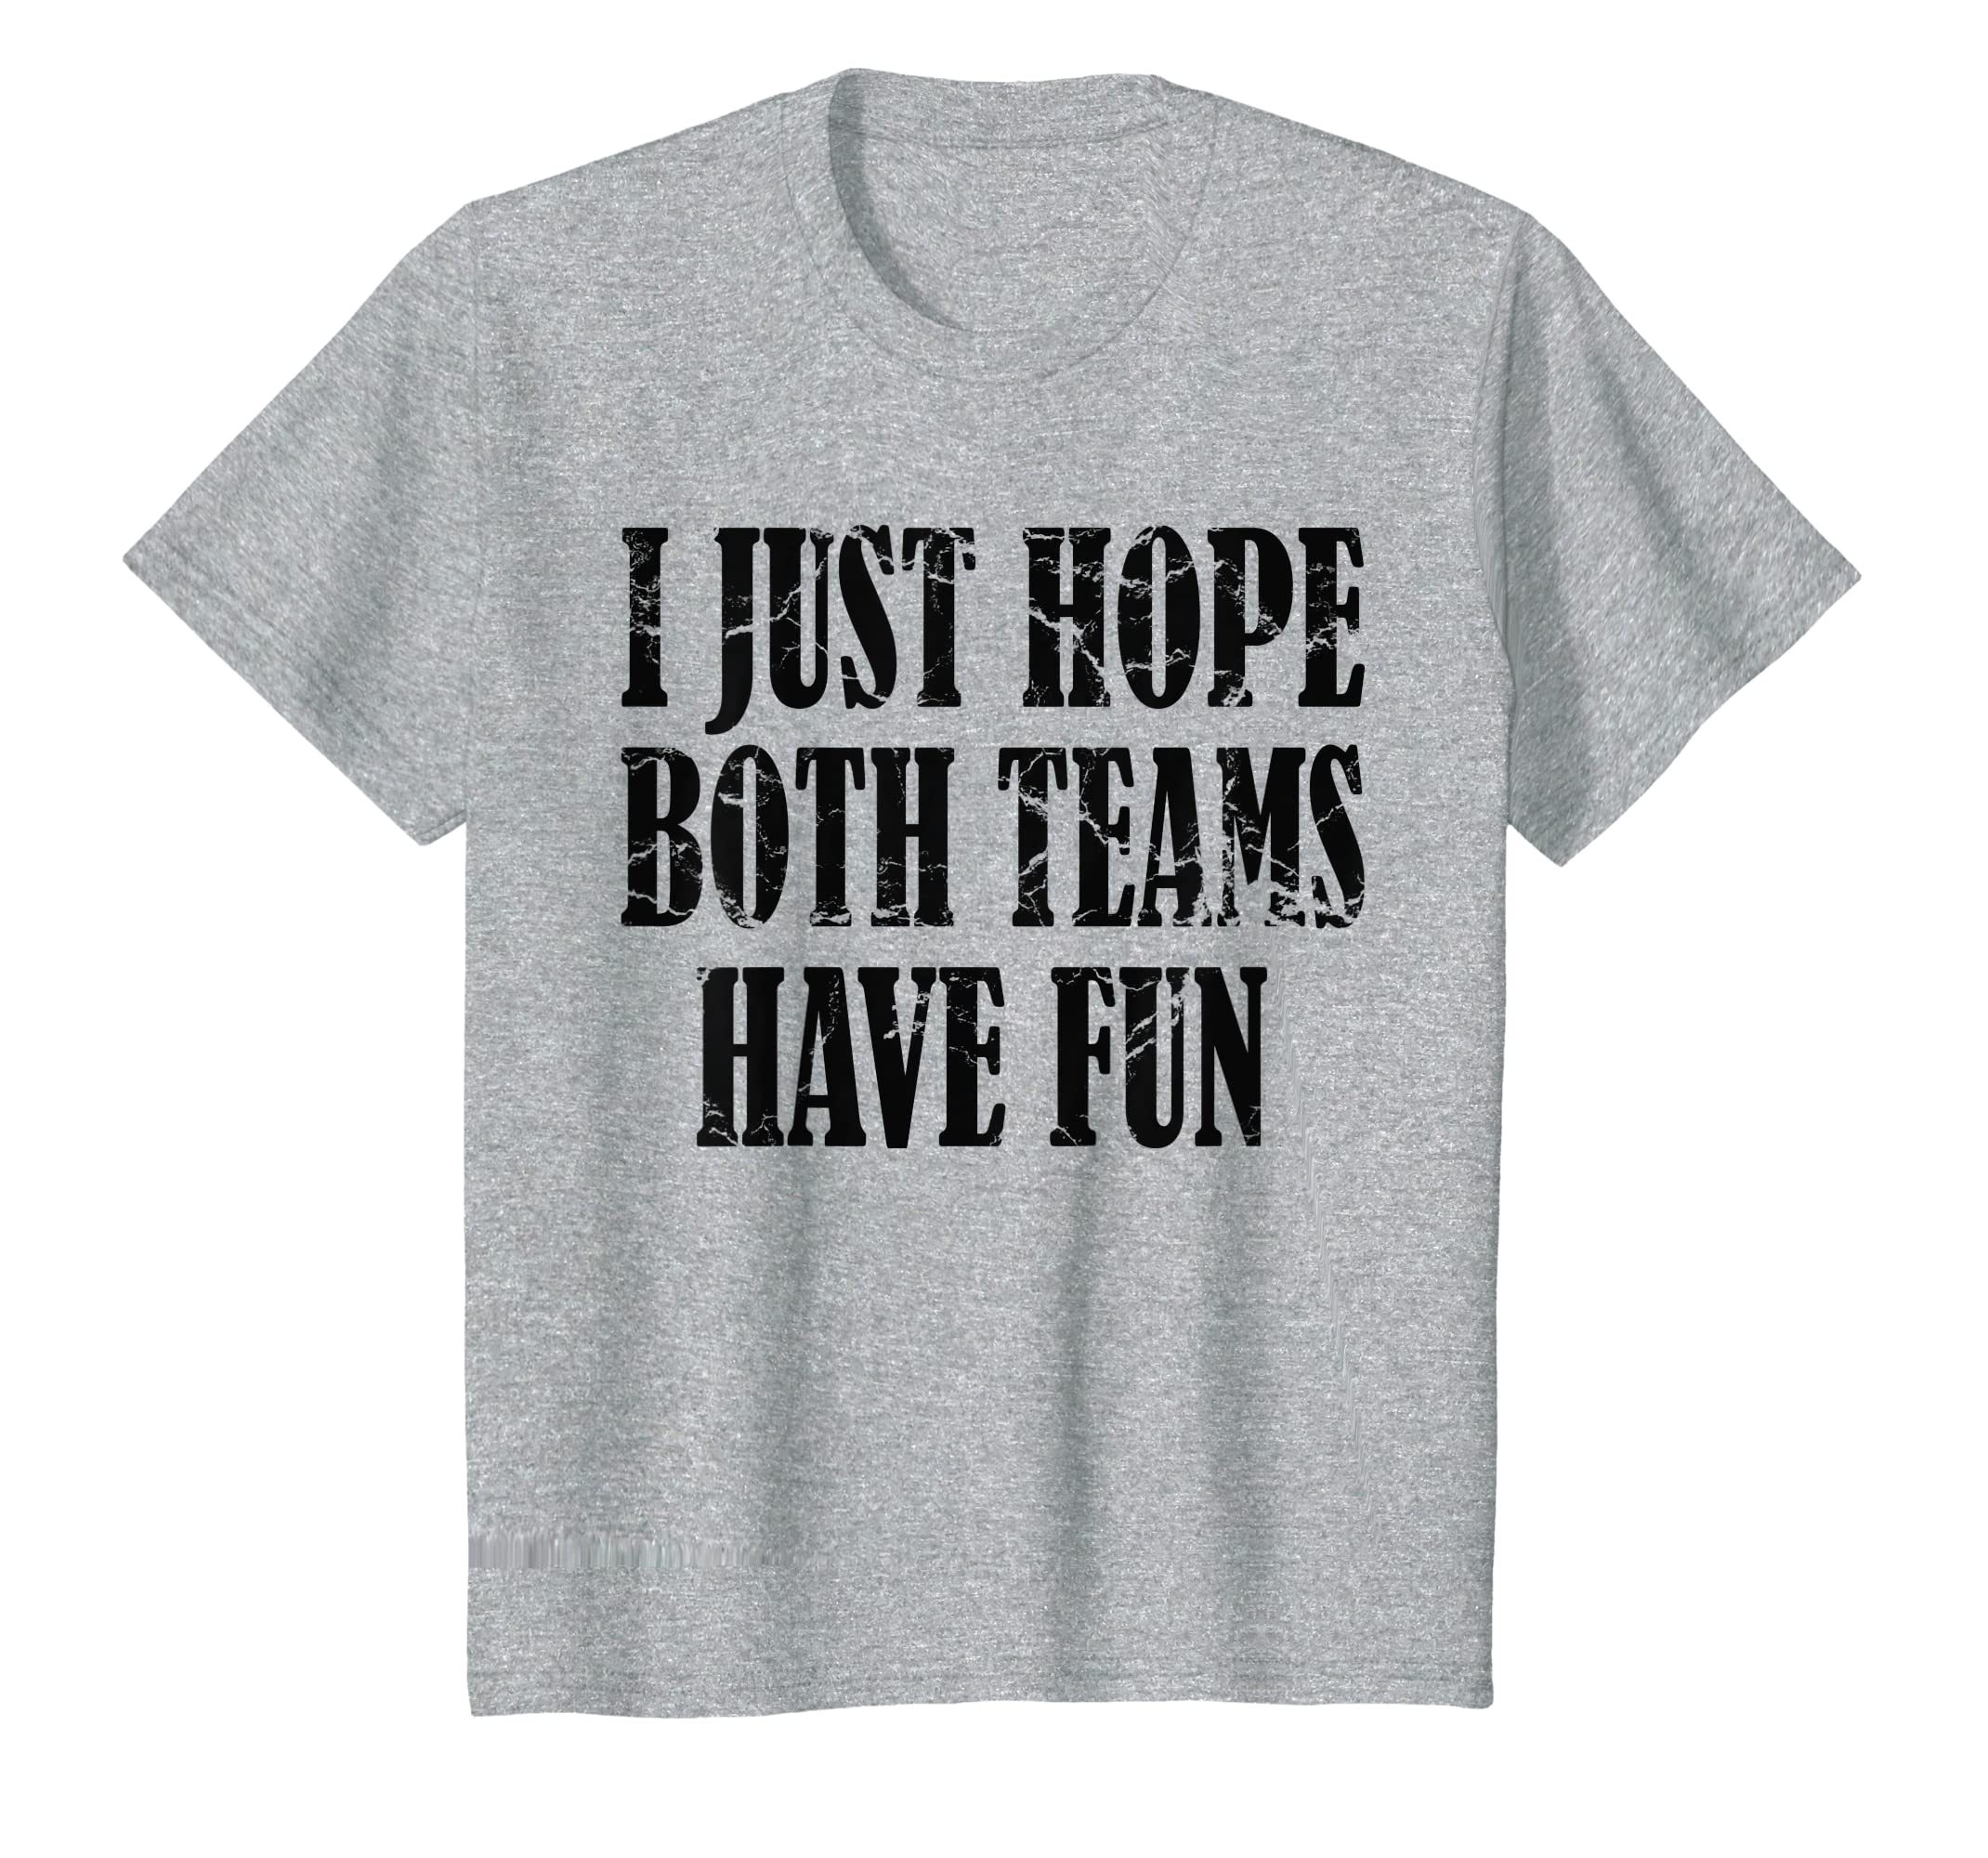 45c66d2160 Amazon.com: I Just Hope Both Teams Have Fun T Shirts for Men,Women, Kids:  Clothing